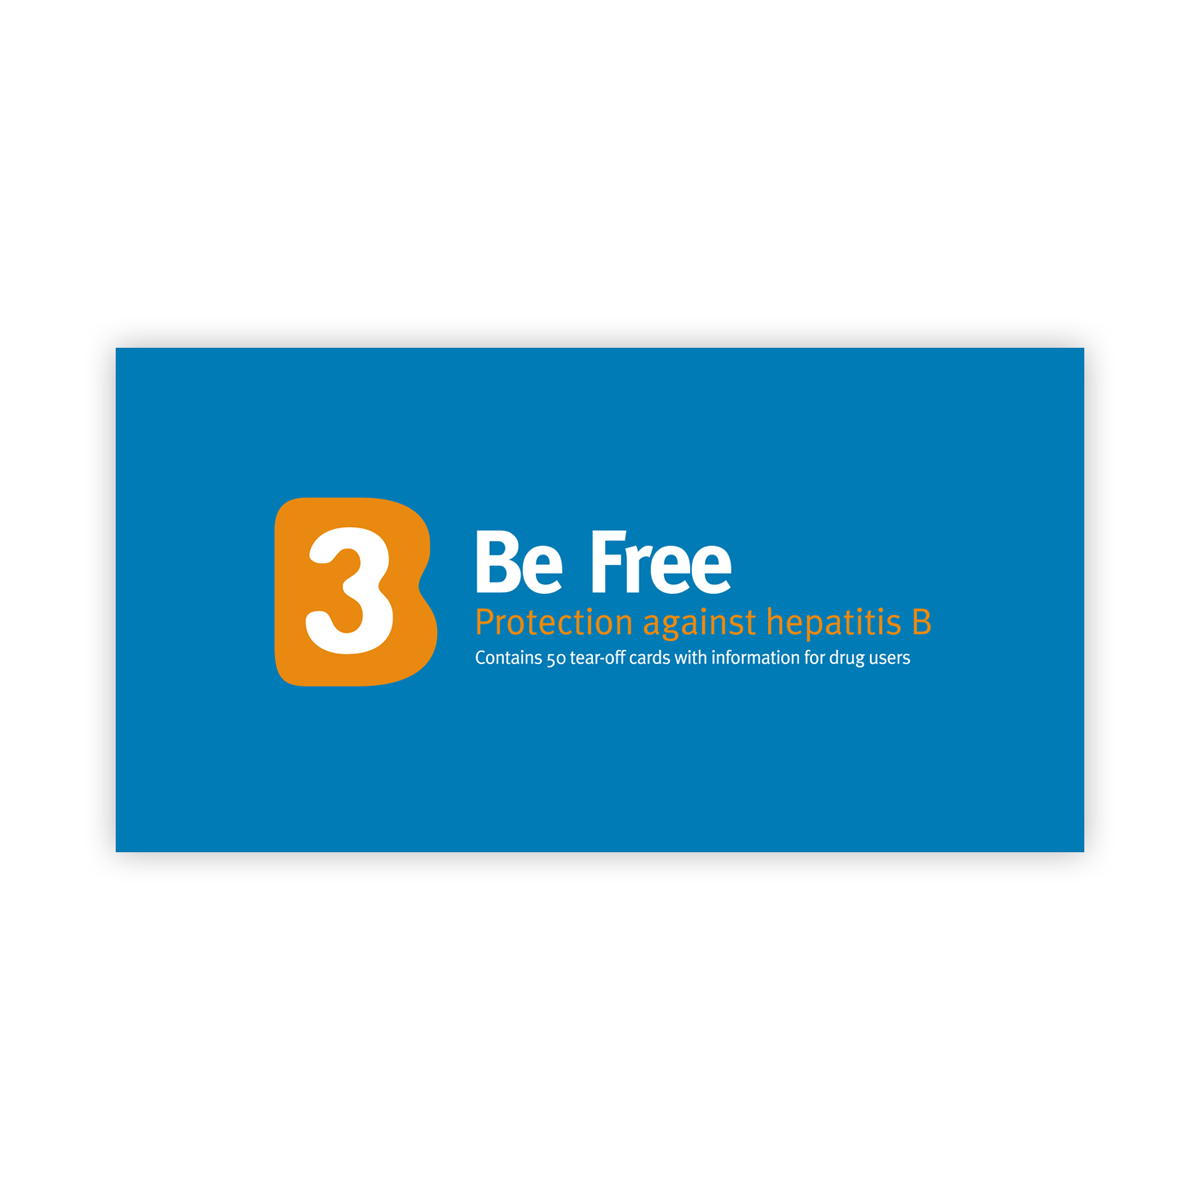 B3 Be Free: hep B vaccination card